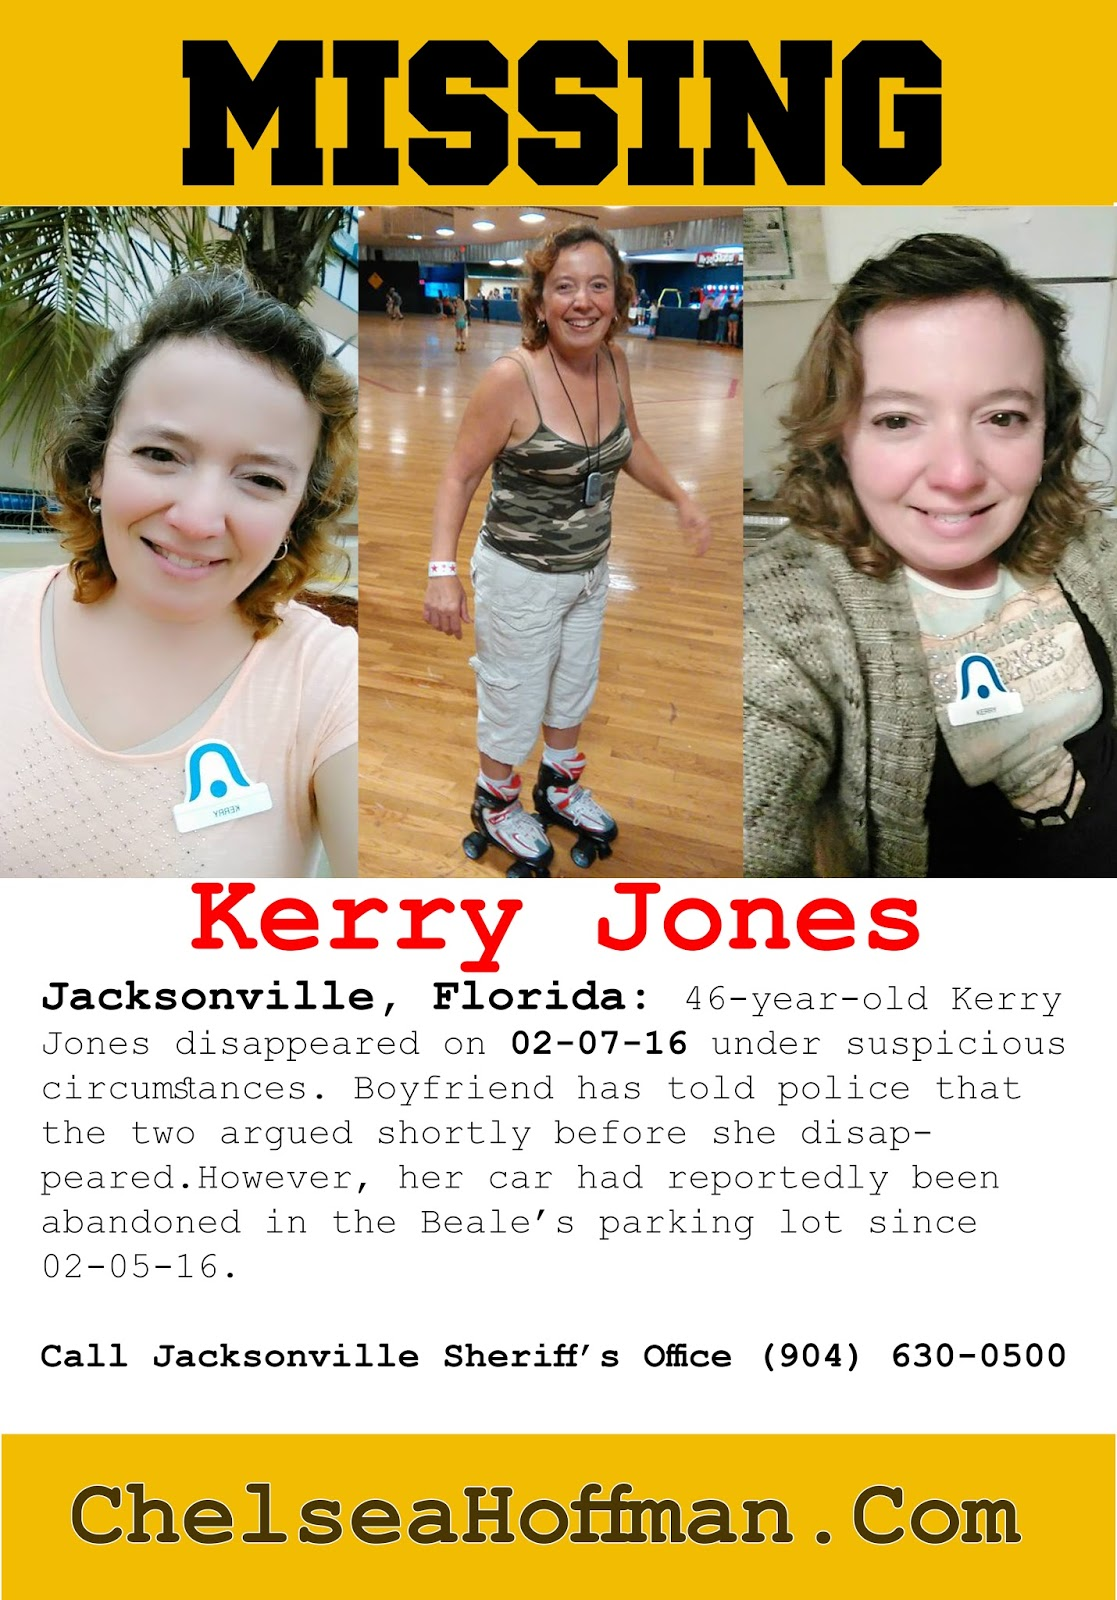 Kerry Jones is still missing